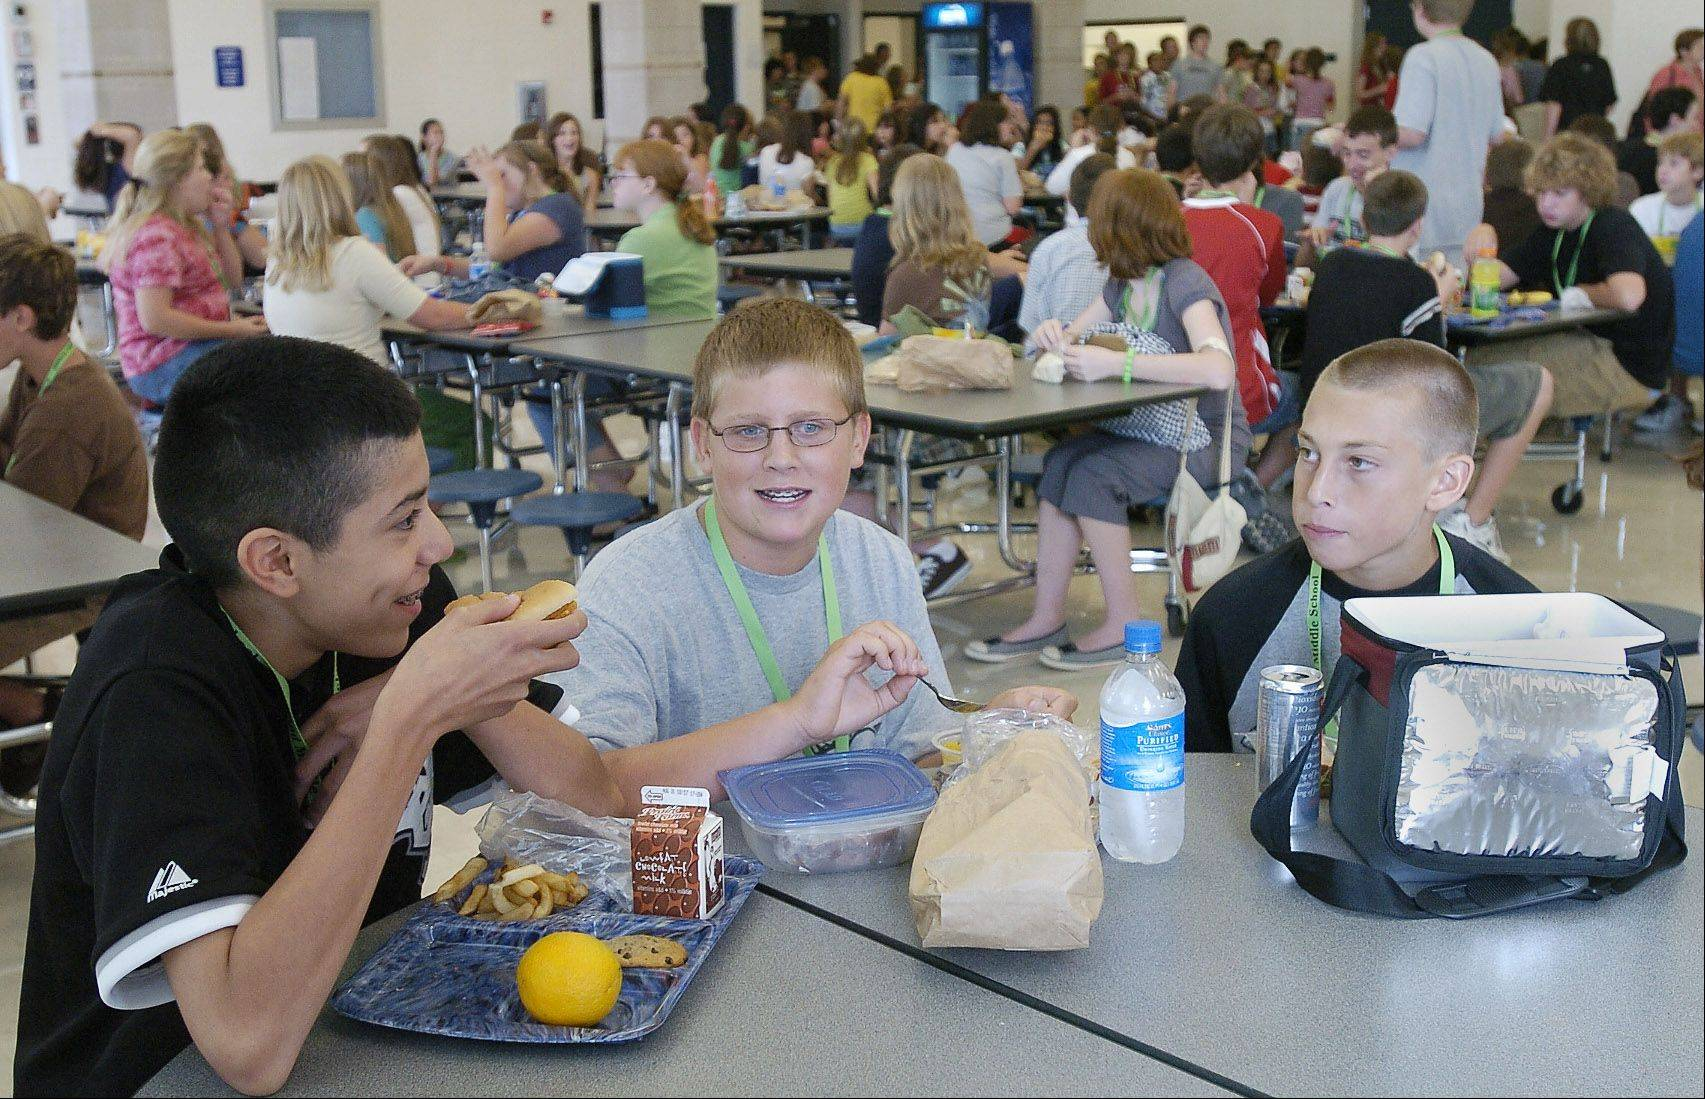 Kaneland school officials are considering whether to start a hot lunch program in all of its elementary schools.